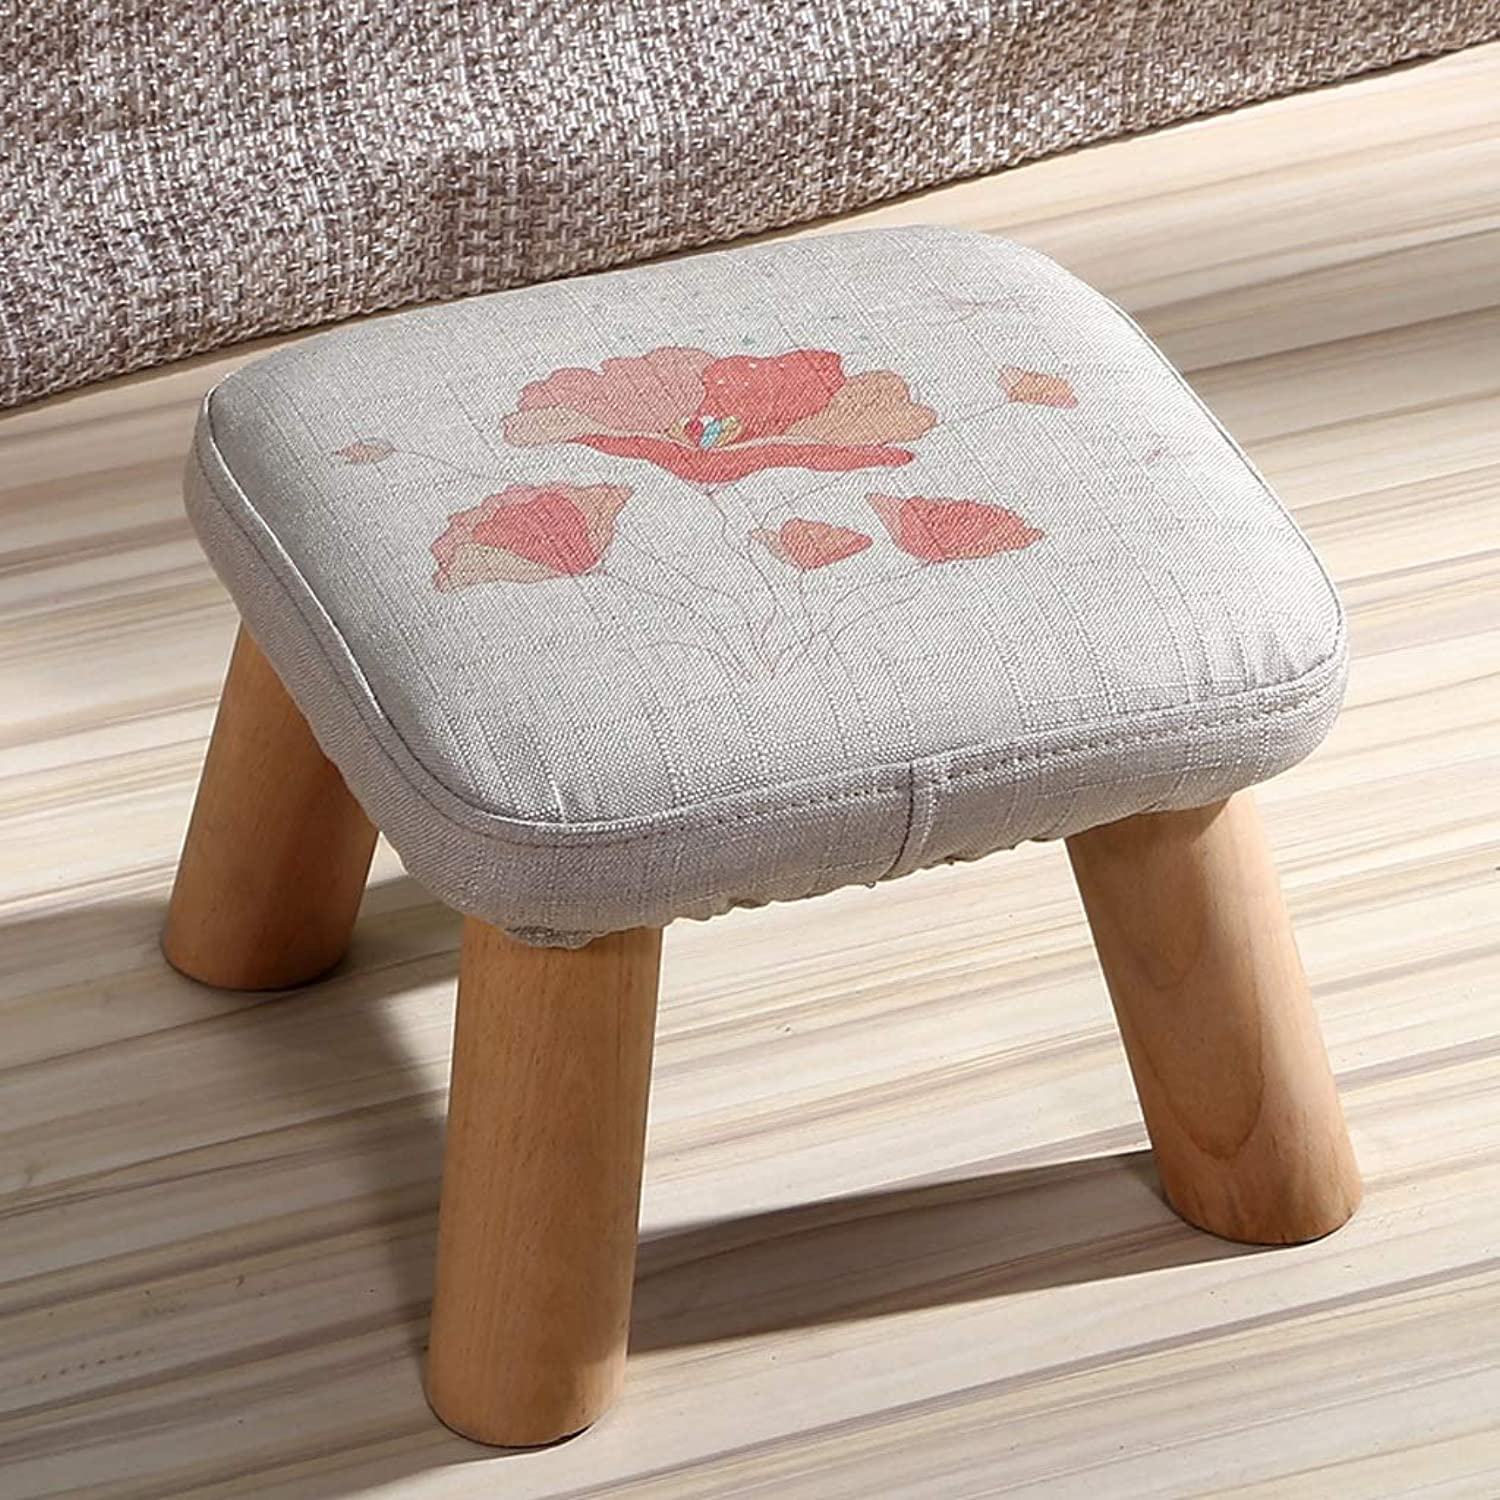 HLJ Fashion Cloth Small Bench Creative Solid Wood Stool Personality Cute Change shoes Bench